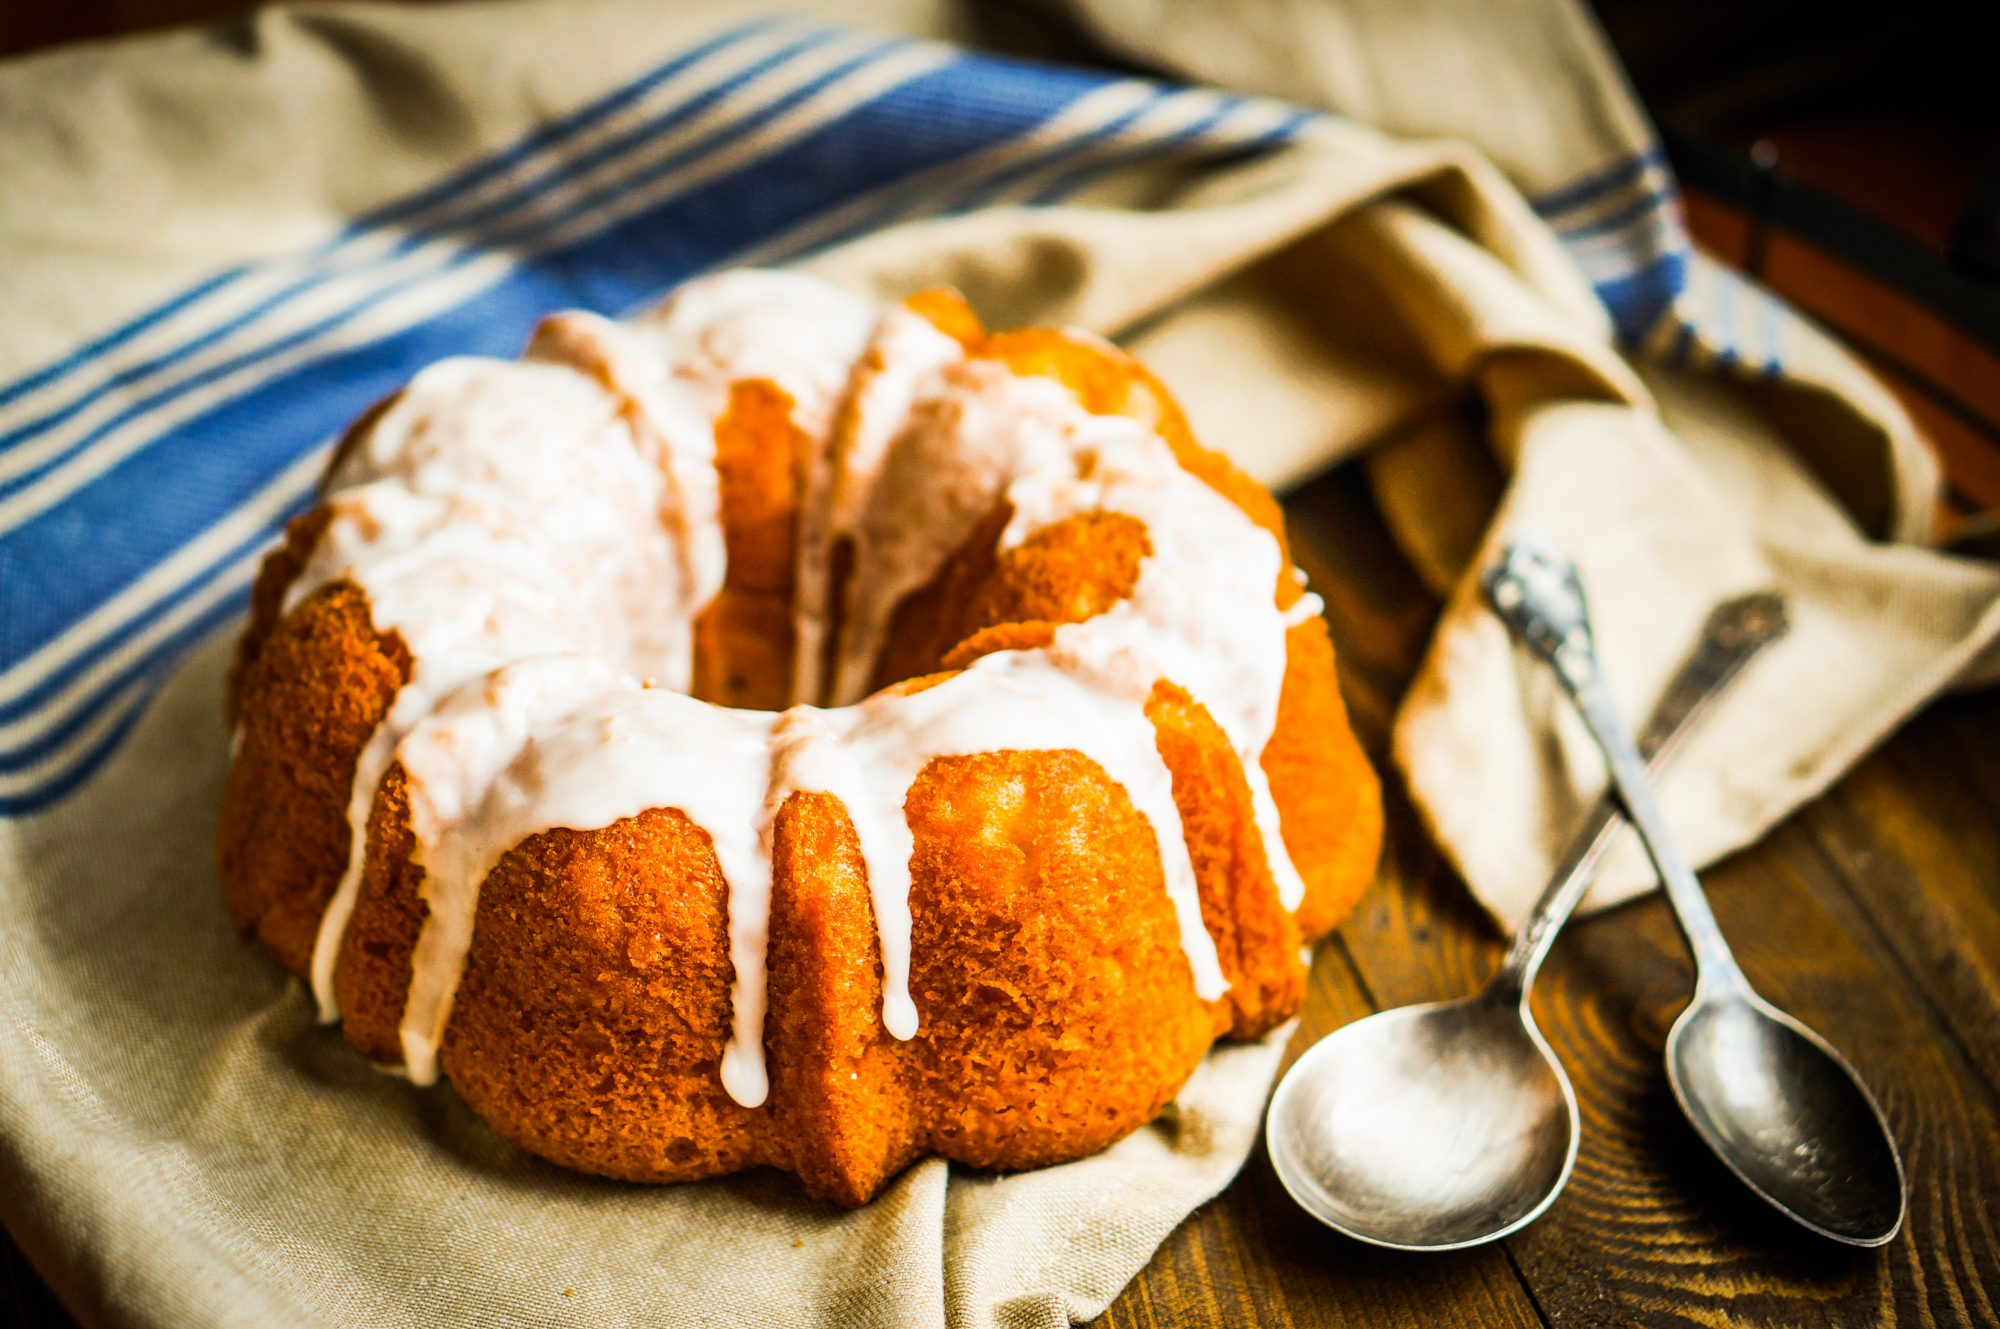 Sock It to Me Cake Is a Classic Dessert That Southerners Love